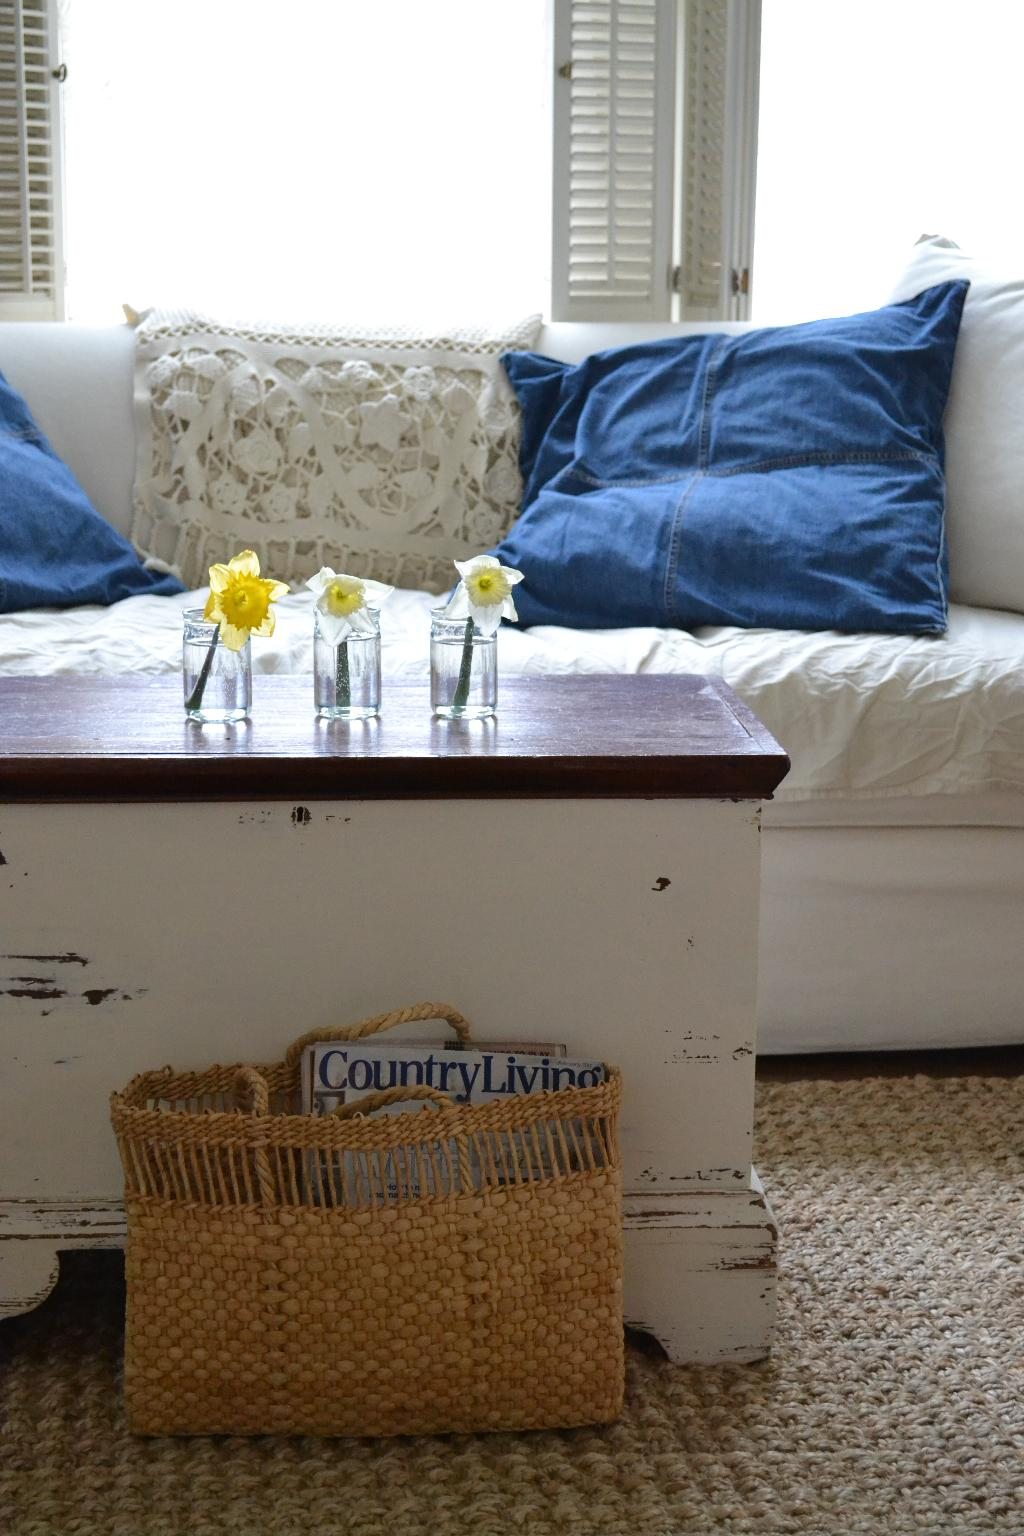 Cottage Fix - denim pillows and daffodils... spring decor